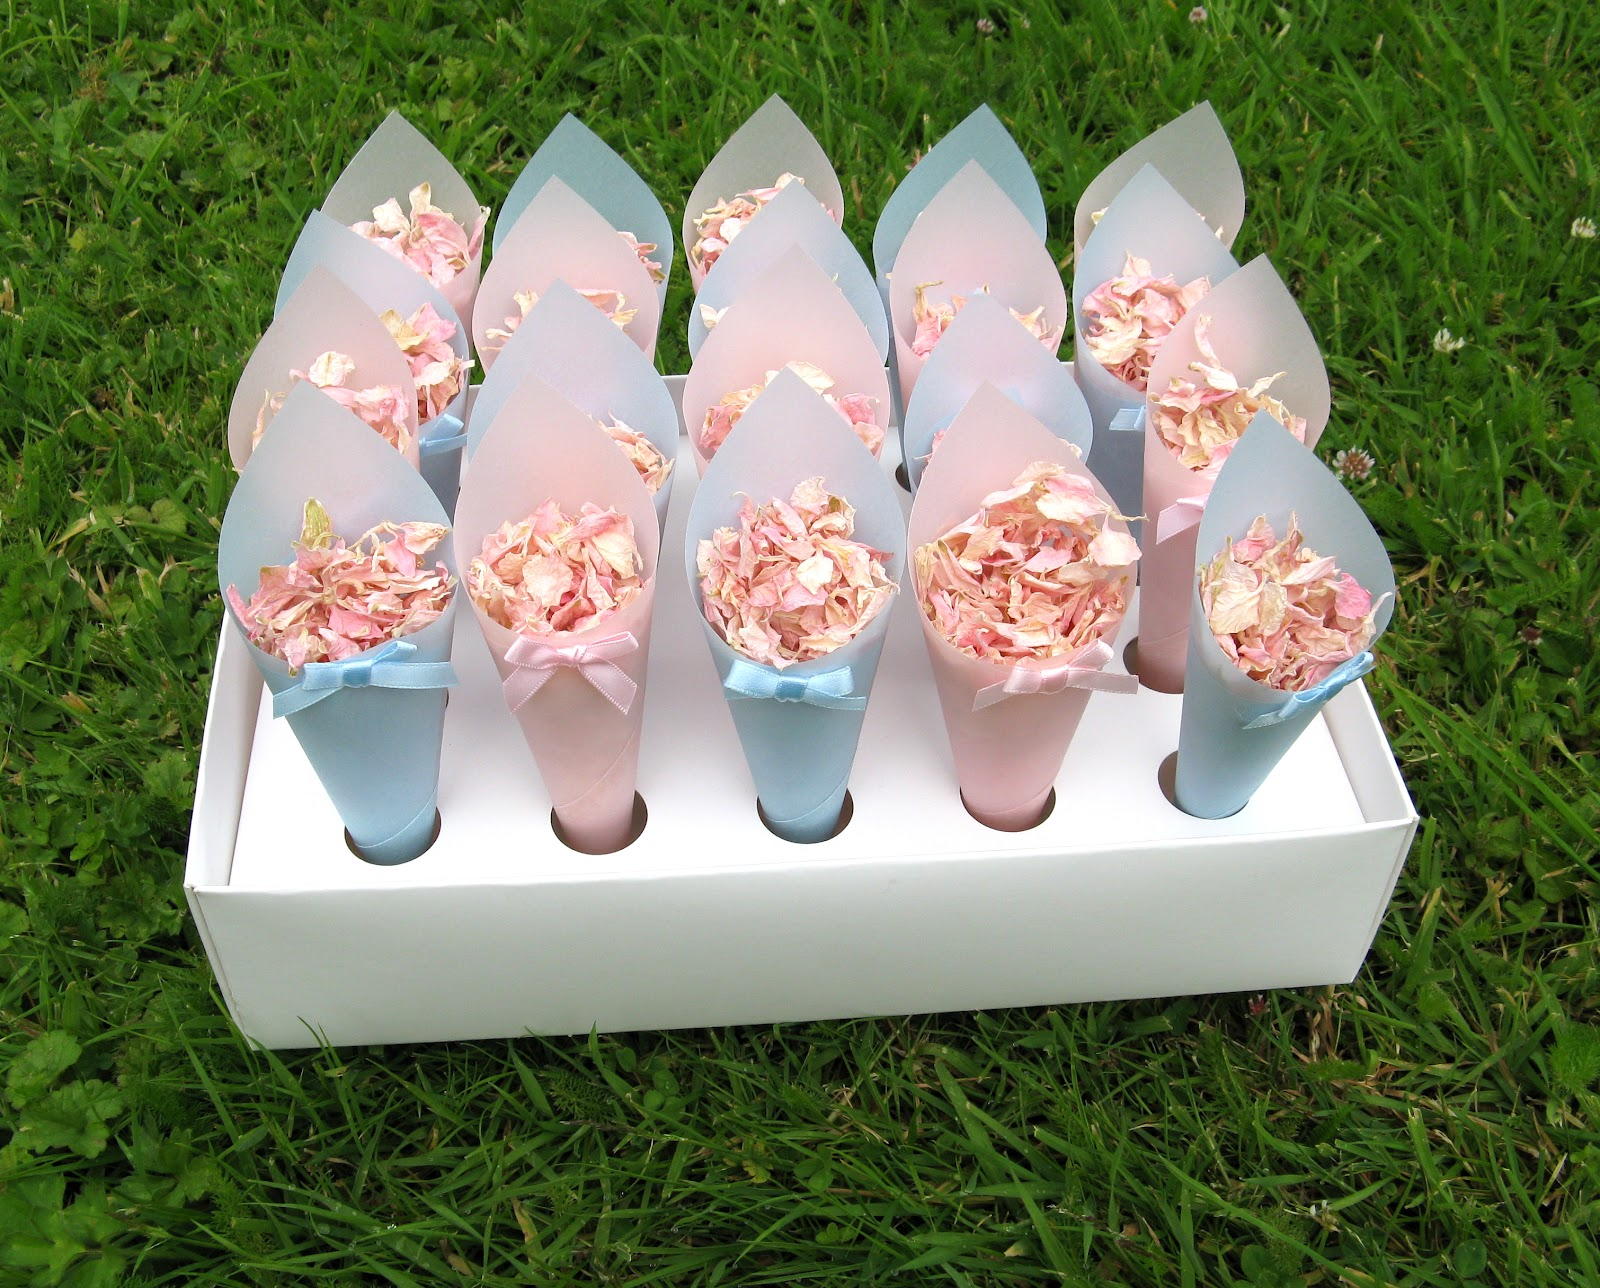 Boys The Real Flower Petal Confetti Company 39 S Petal Tips For Grooms